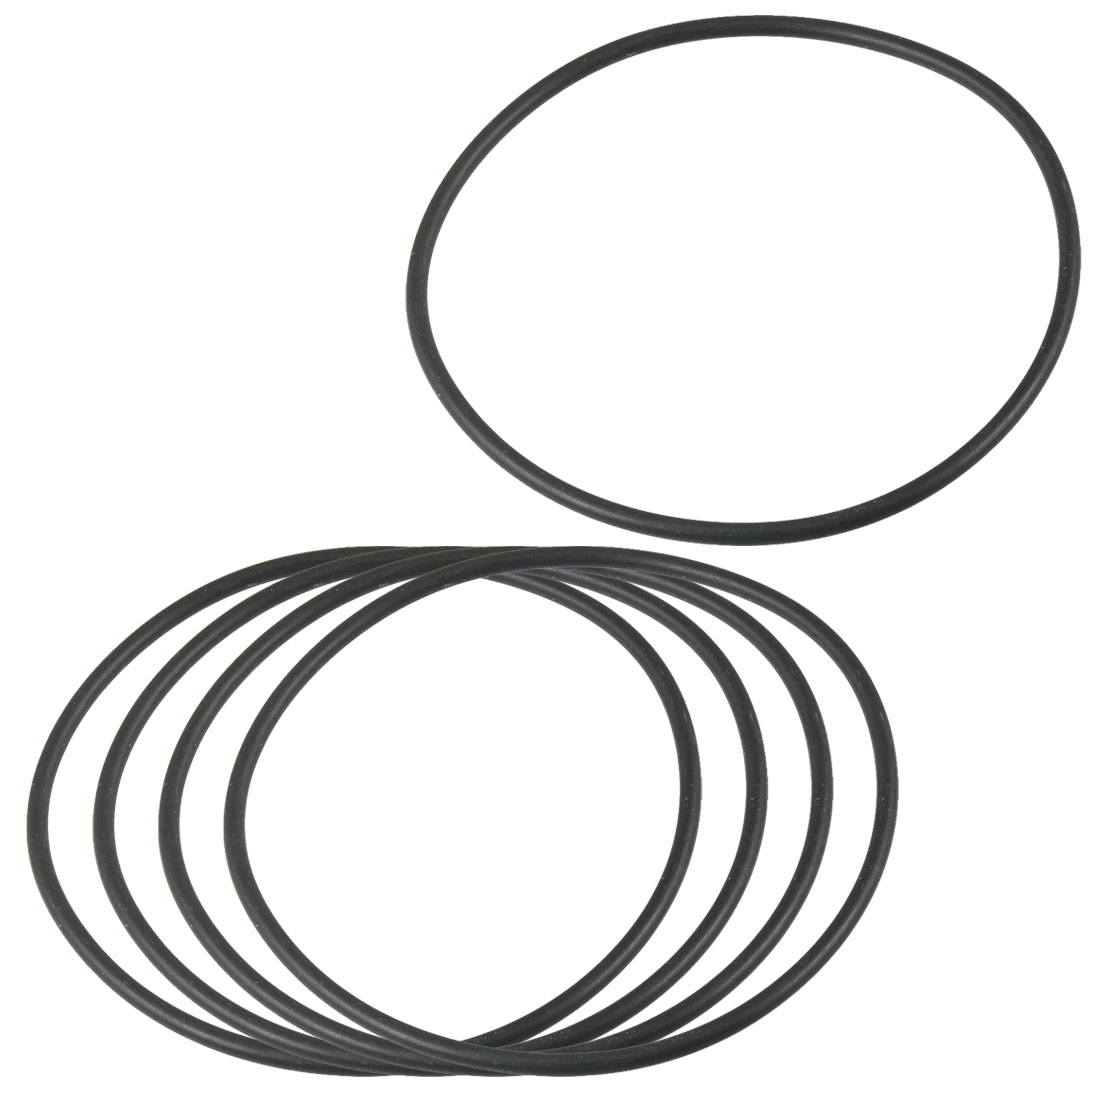 uxcell/® 20Pcs Black 33 x 2mm Industrial Flexible Rubber O Ring Oil Sealing Grommets